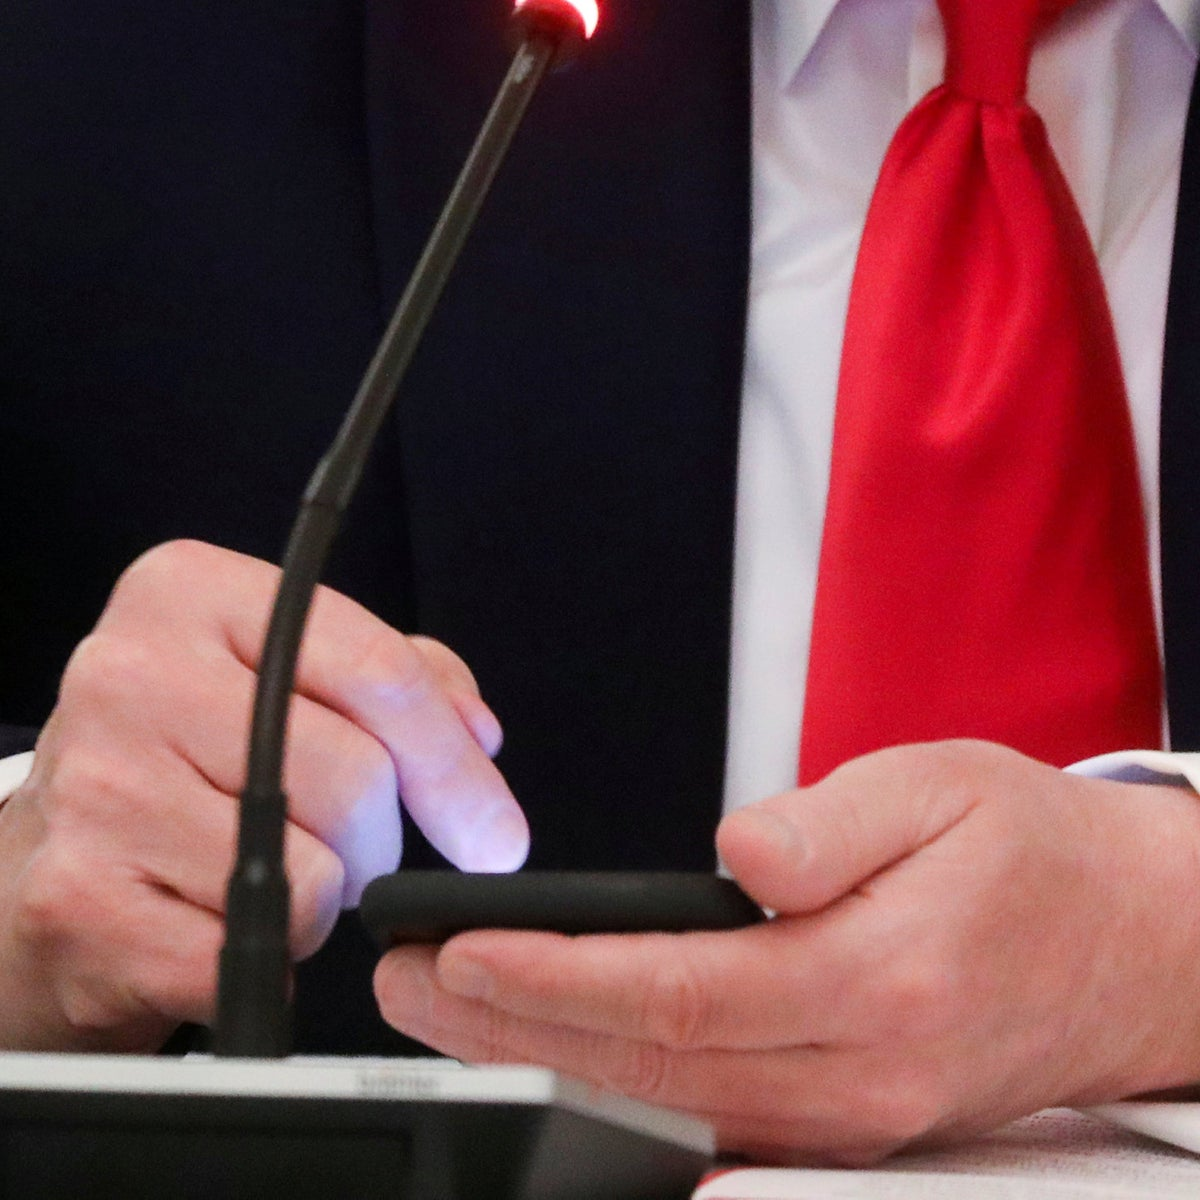 Trump taps the screen on a mobile phone during a roundtable discussion on the reopening of small businesses in the State Dining Room at the White House in Washington, U.S., June 18, 2020.